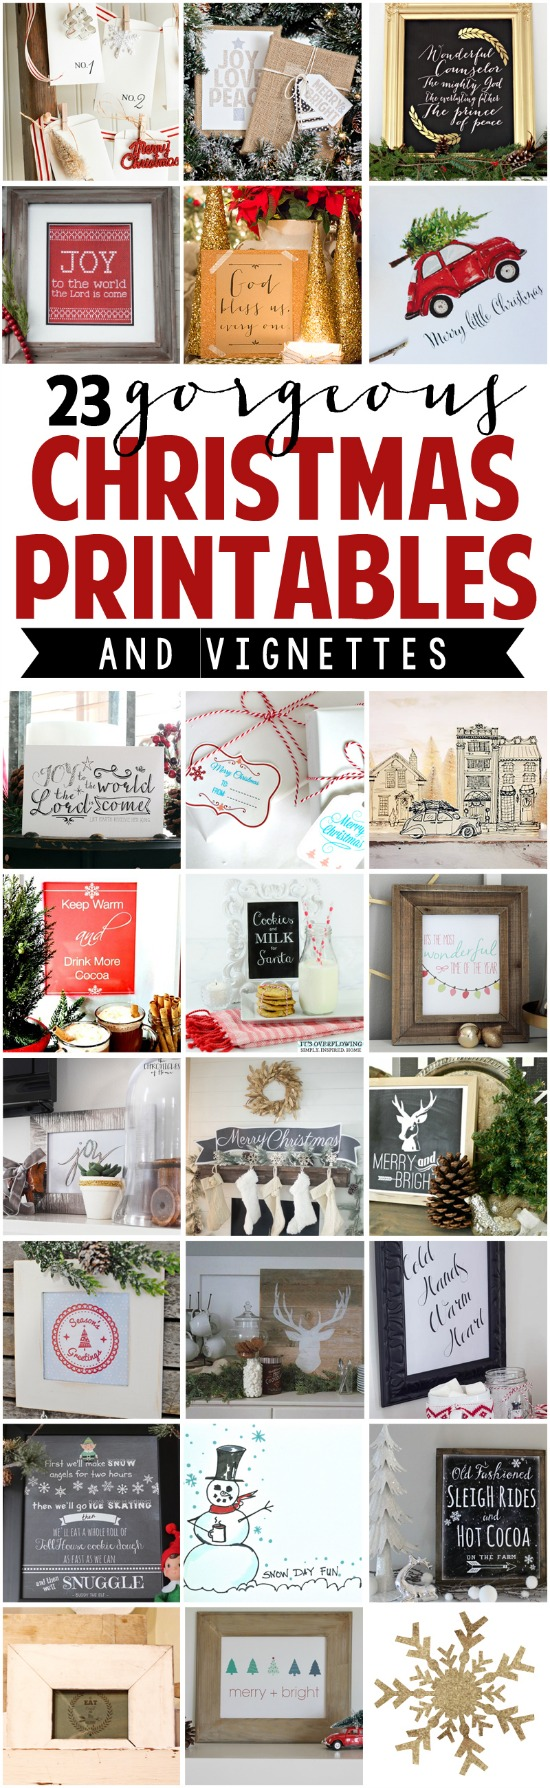 23 Gorgeous Christmas Printables with Display Ideas kellyelko.com